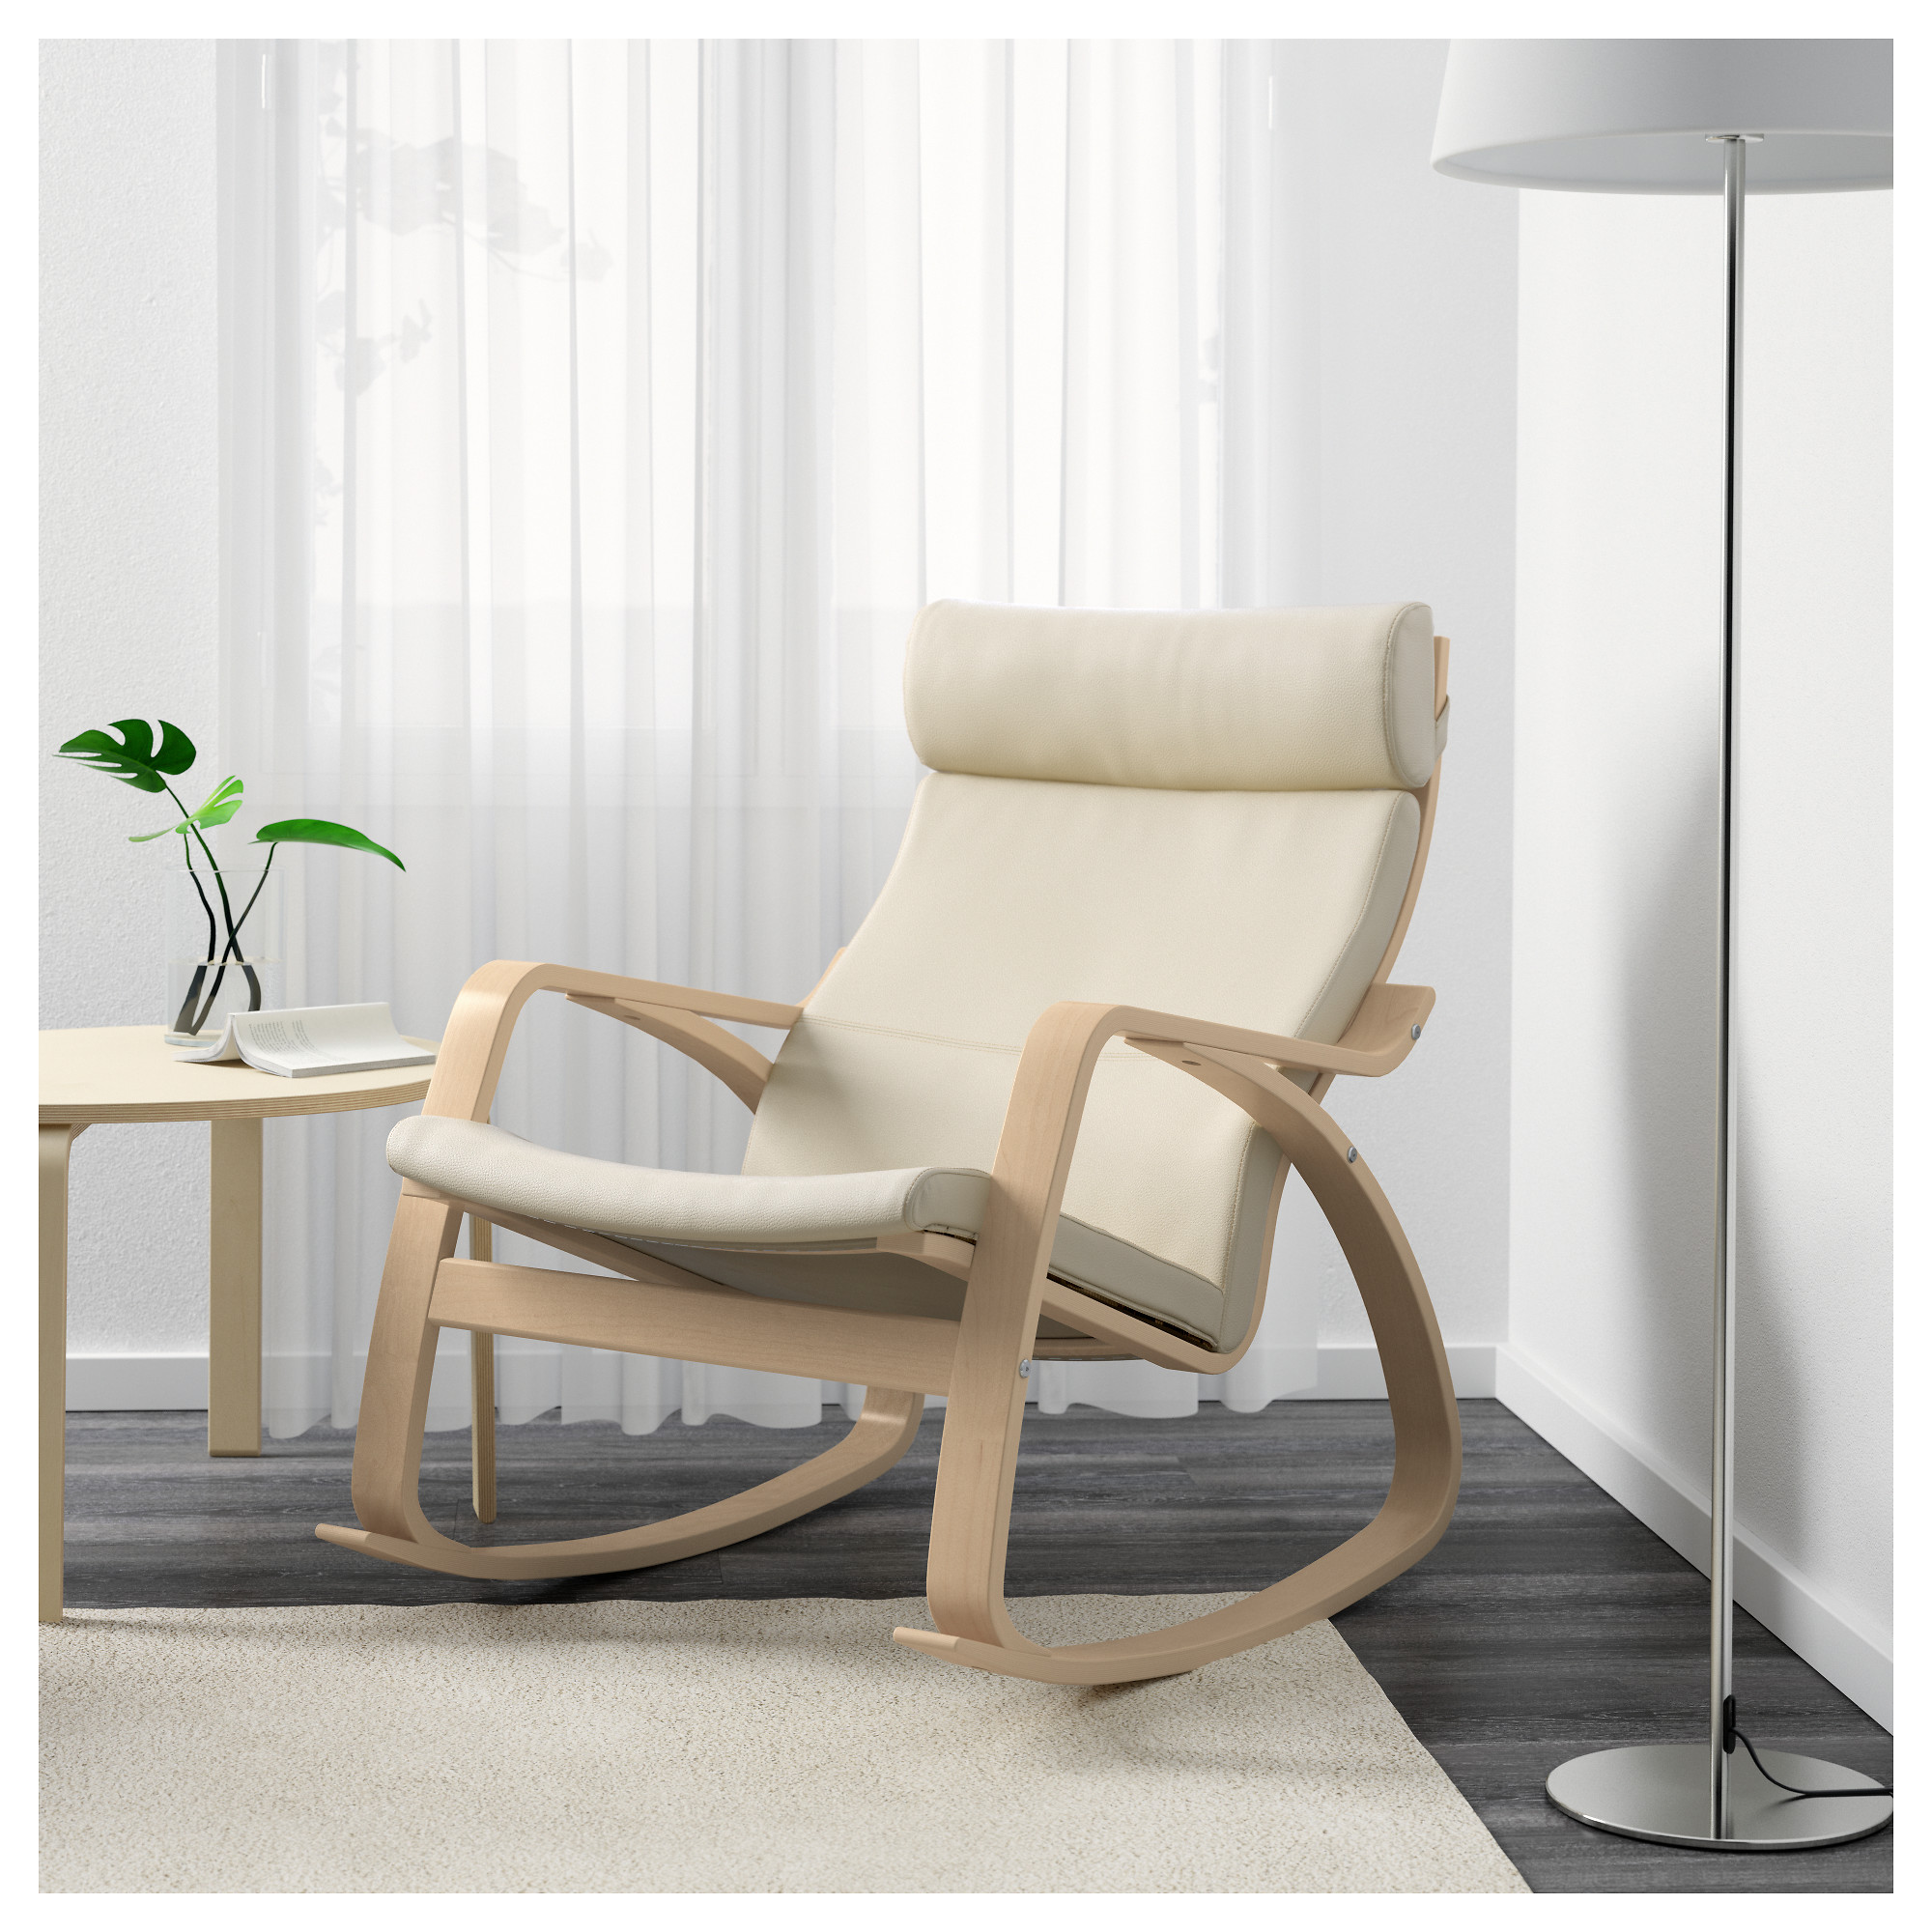 Ikea lillberg rocking chair - Ikea Lillberg Rocking Chair 5